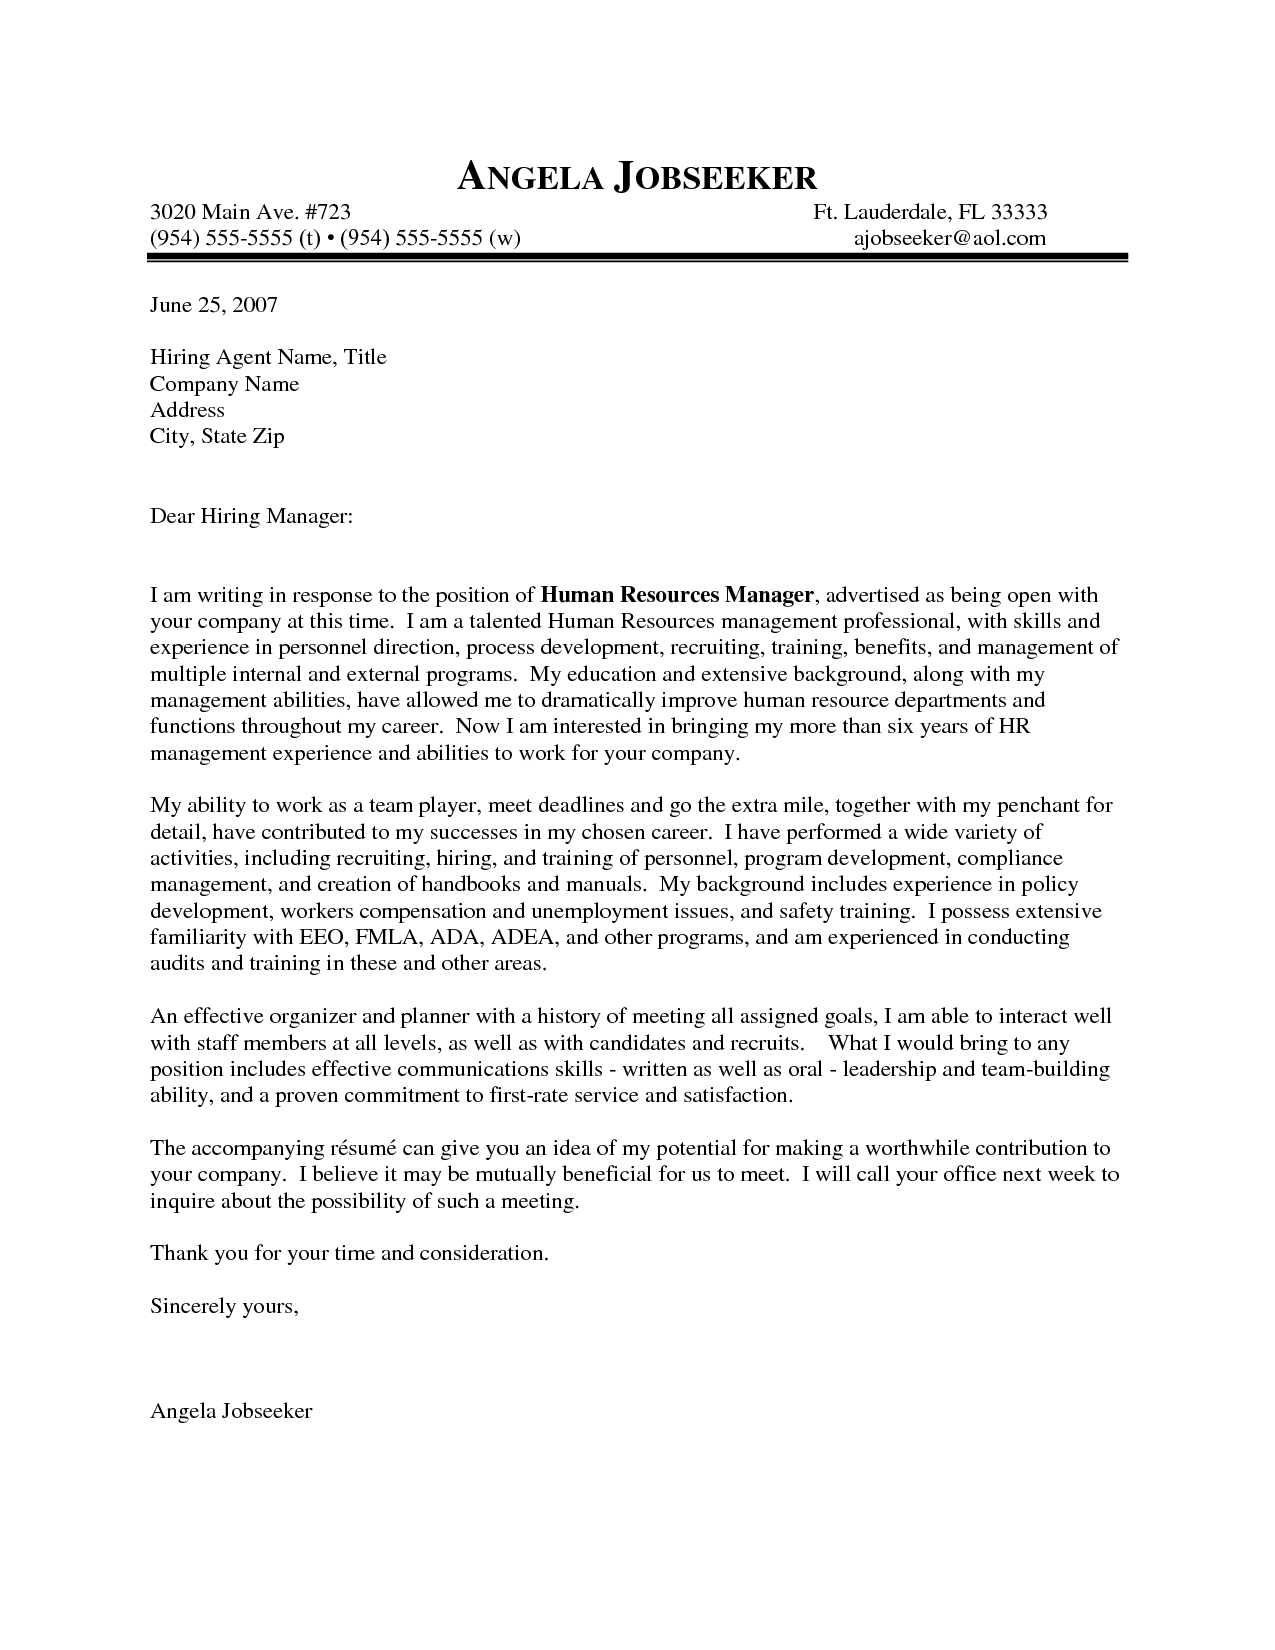 Outstanding cover letter examples hr manager cover letter example how to write a good cover letter for employment best sample cover letters need even more attention grabbing cover spiritdancerdesigns